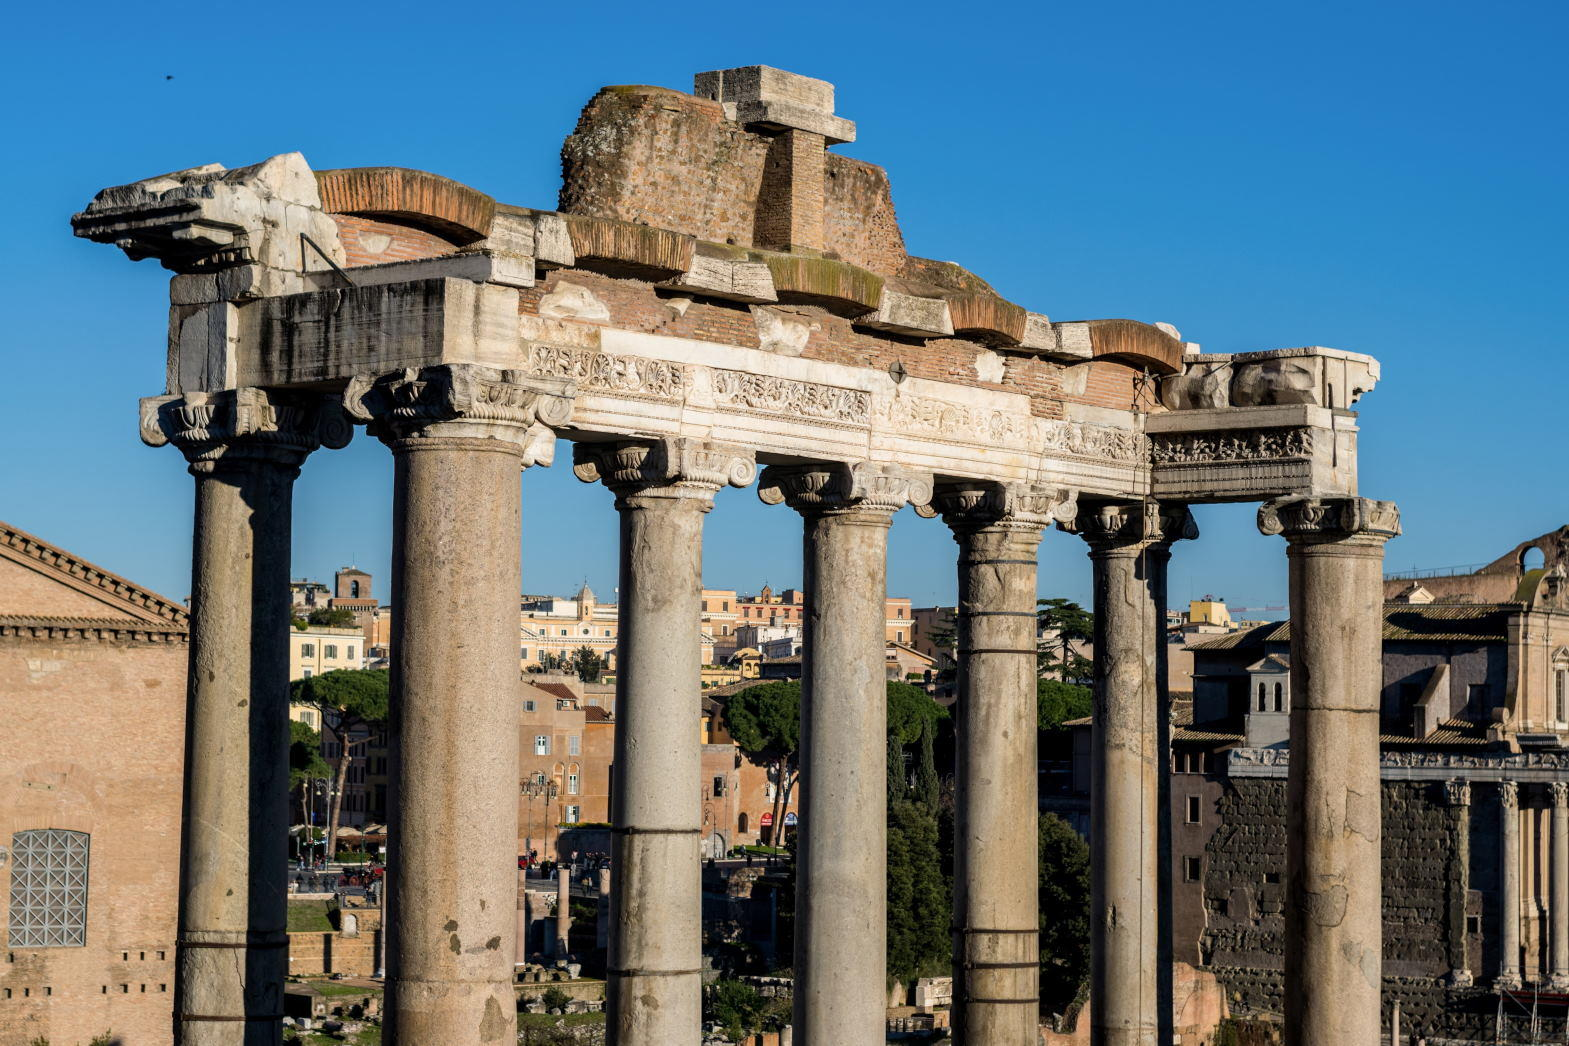 The temple of Saturn from the Capitoline hill.